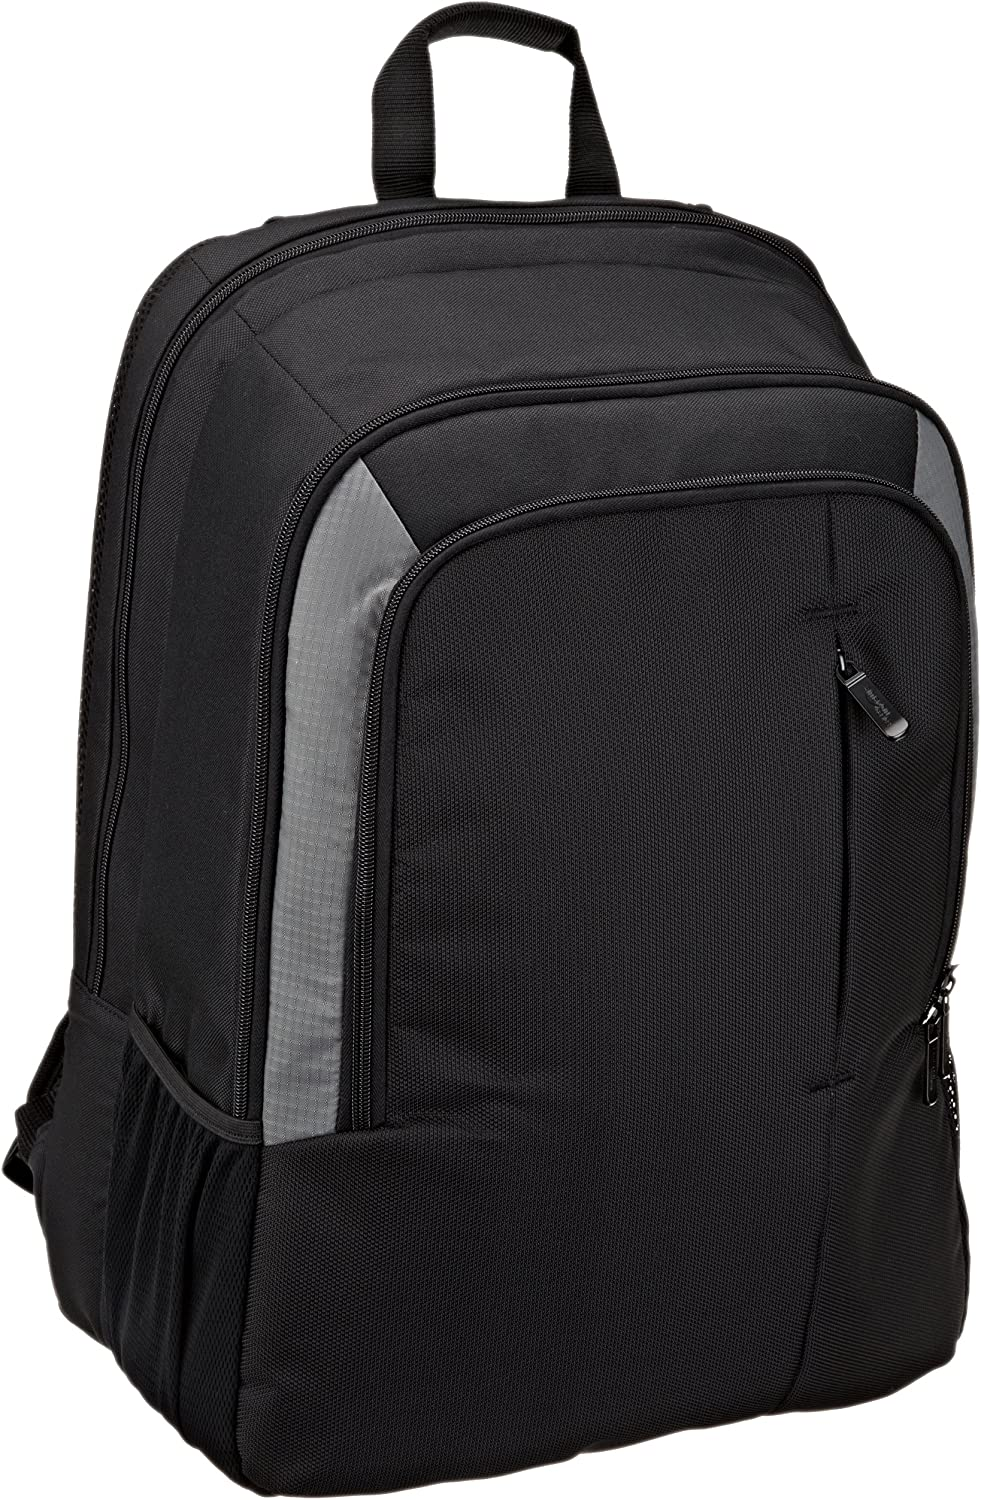 Basics Laptop Computer Backpack - Fits Up To 15 Inch Laptops: Computers & Accessories